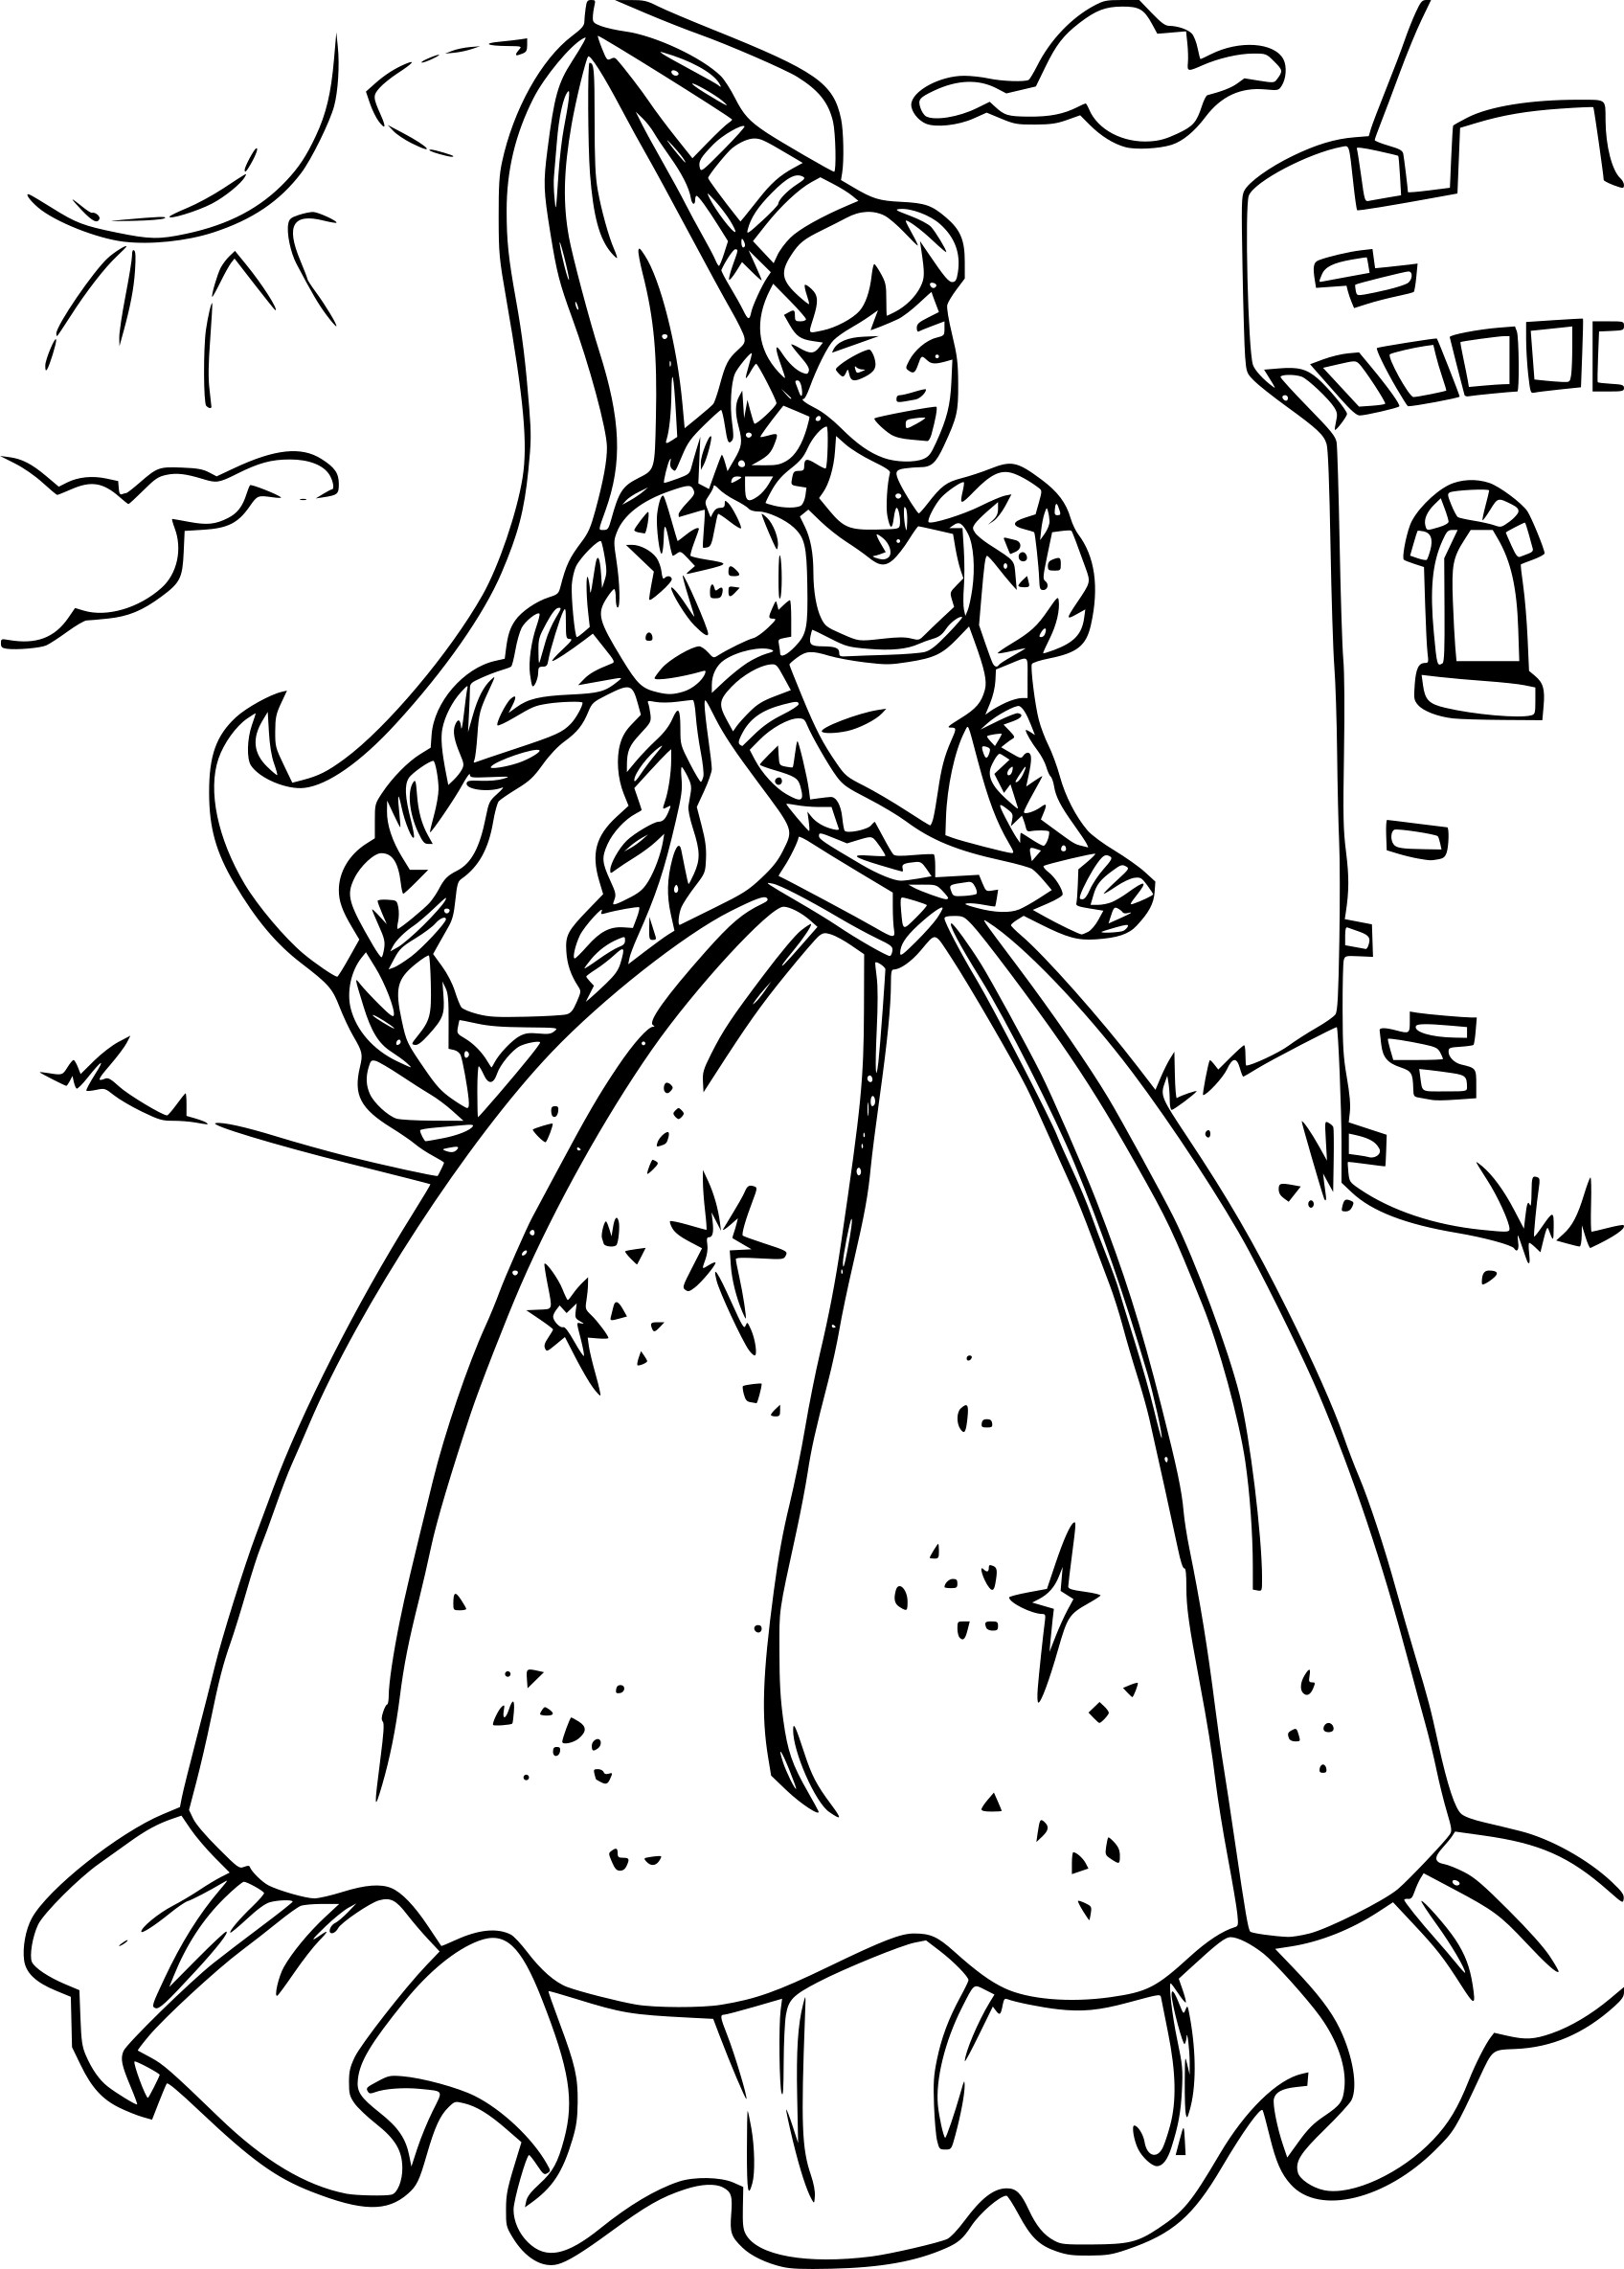 Coloriage princesse barbie dessin imprimer sur - Barbie princesse coloriage ...